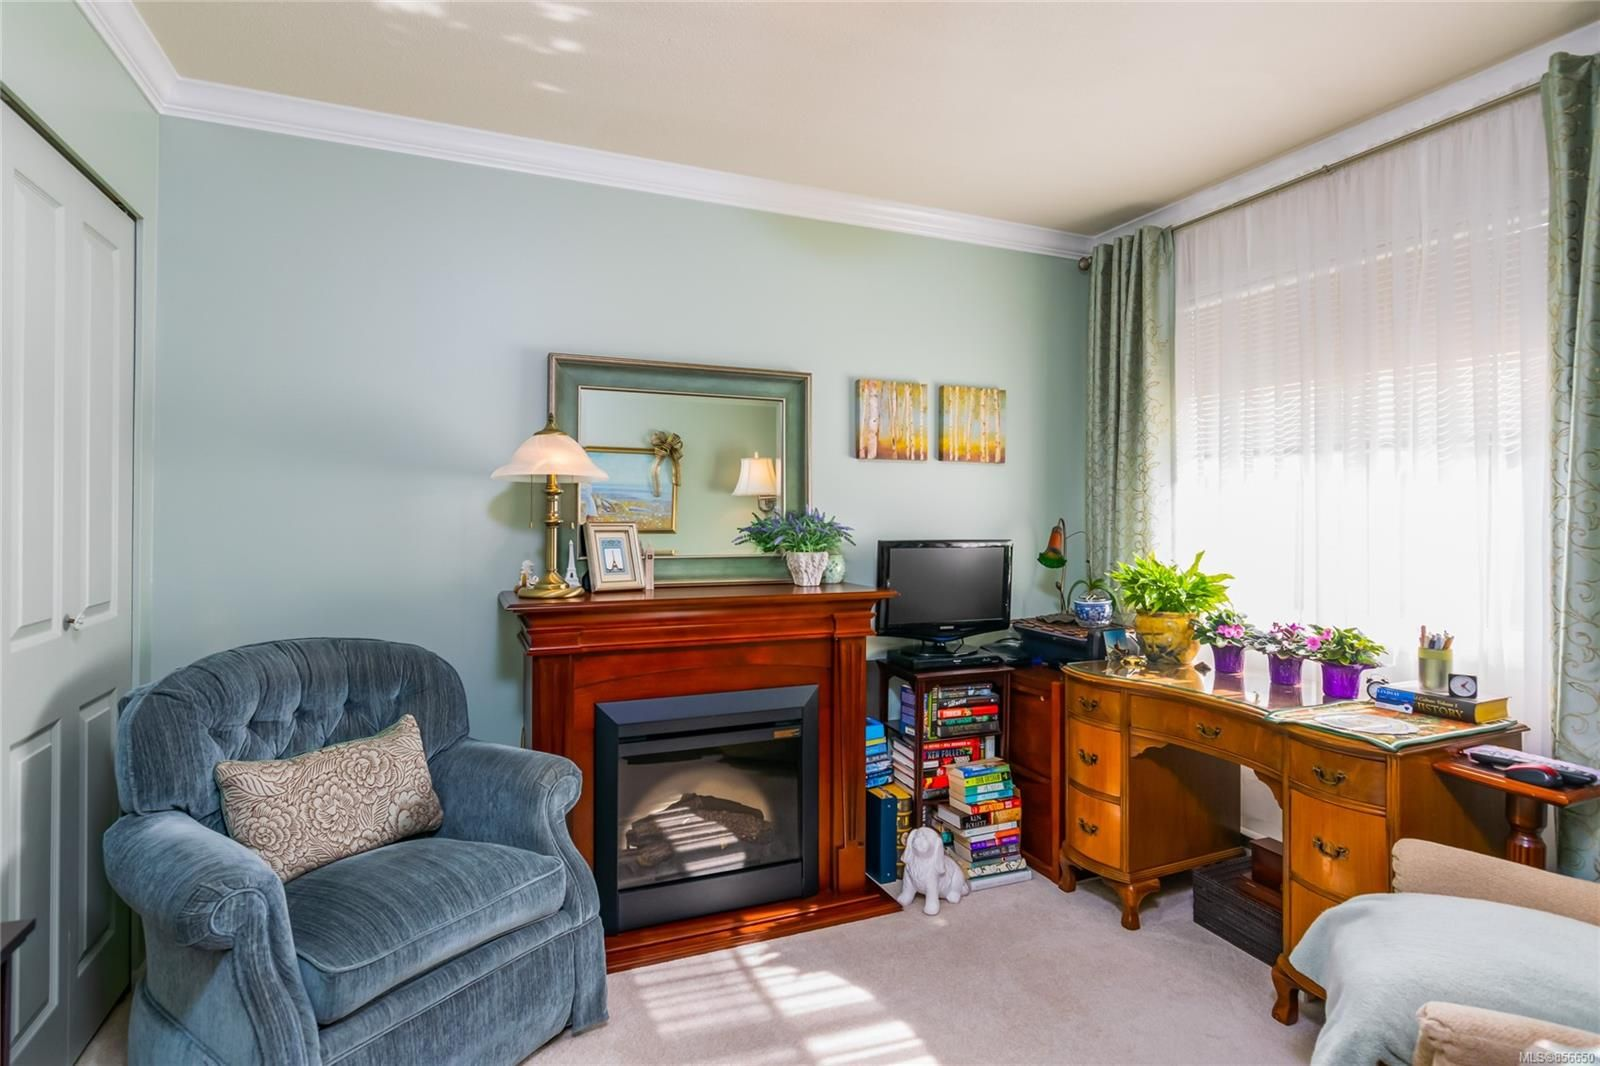 Photo 17: Photos: 4 305 Blower Rd in : PQ Parksville Row/Townhouse for sale (Parksville/Qualicum)  : MLS®# 856650